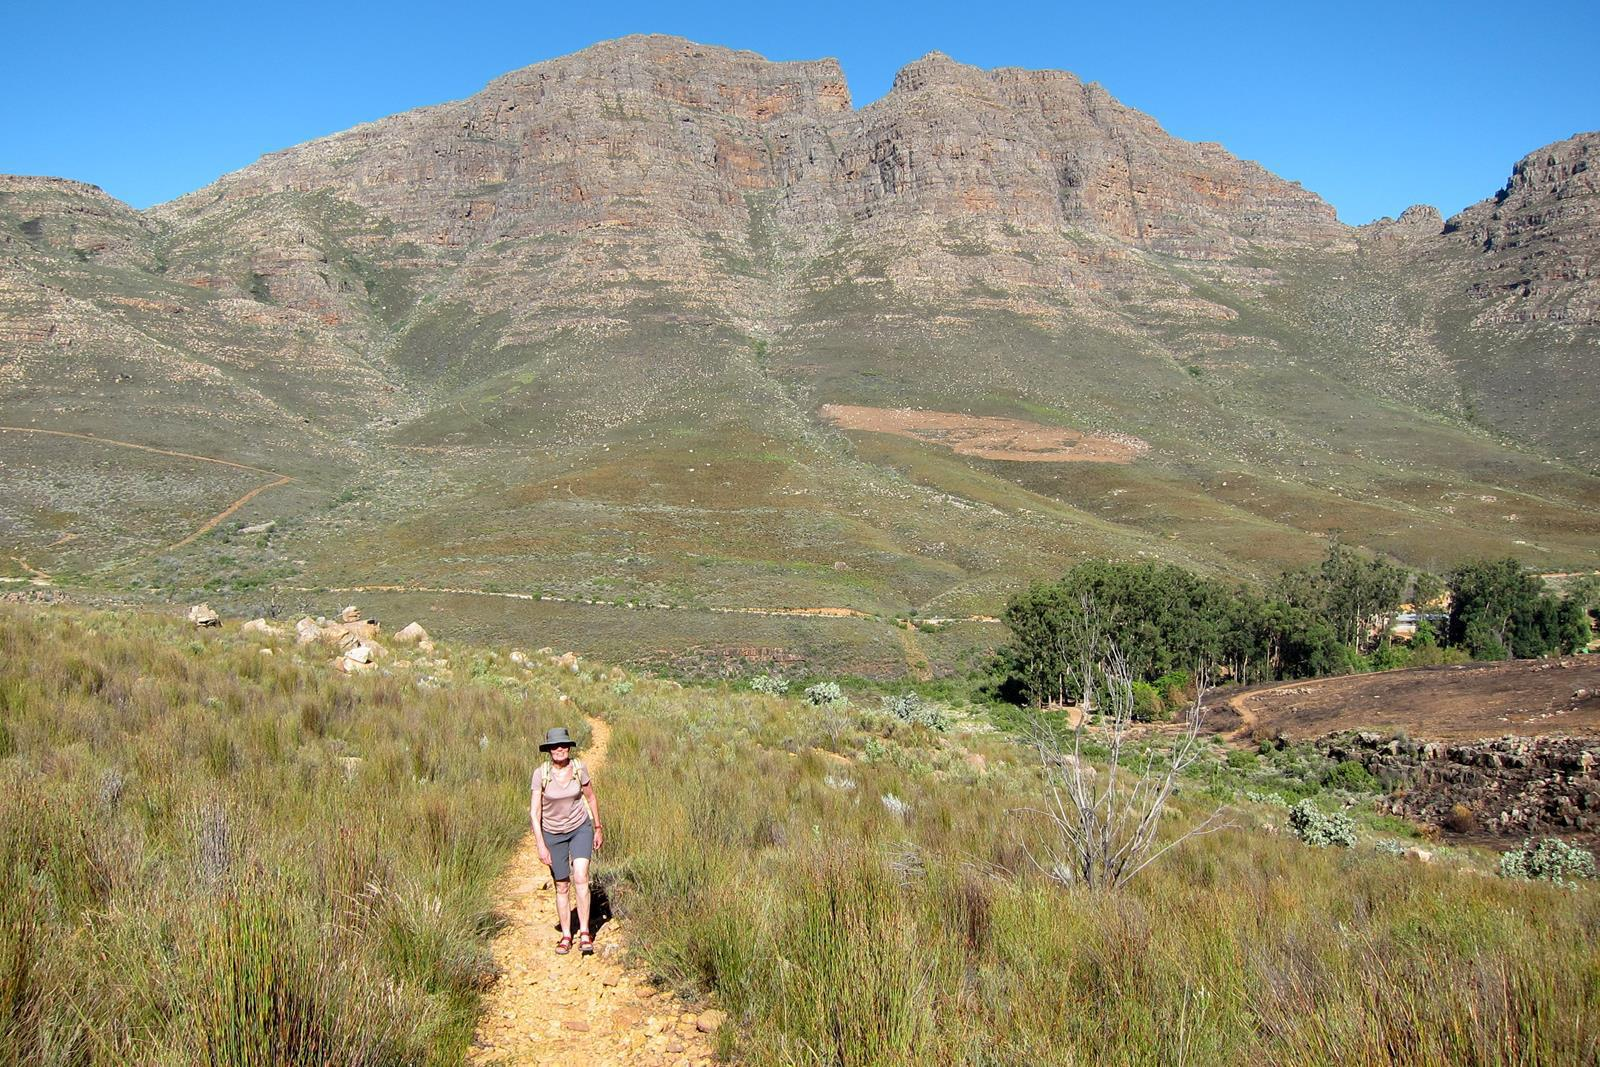 Hike through the Fynbos.